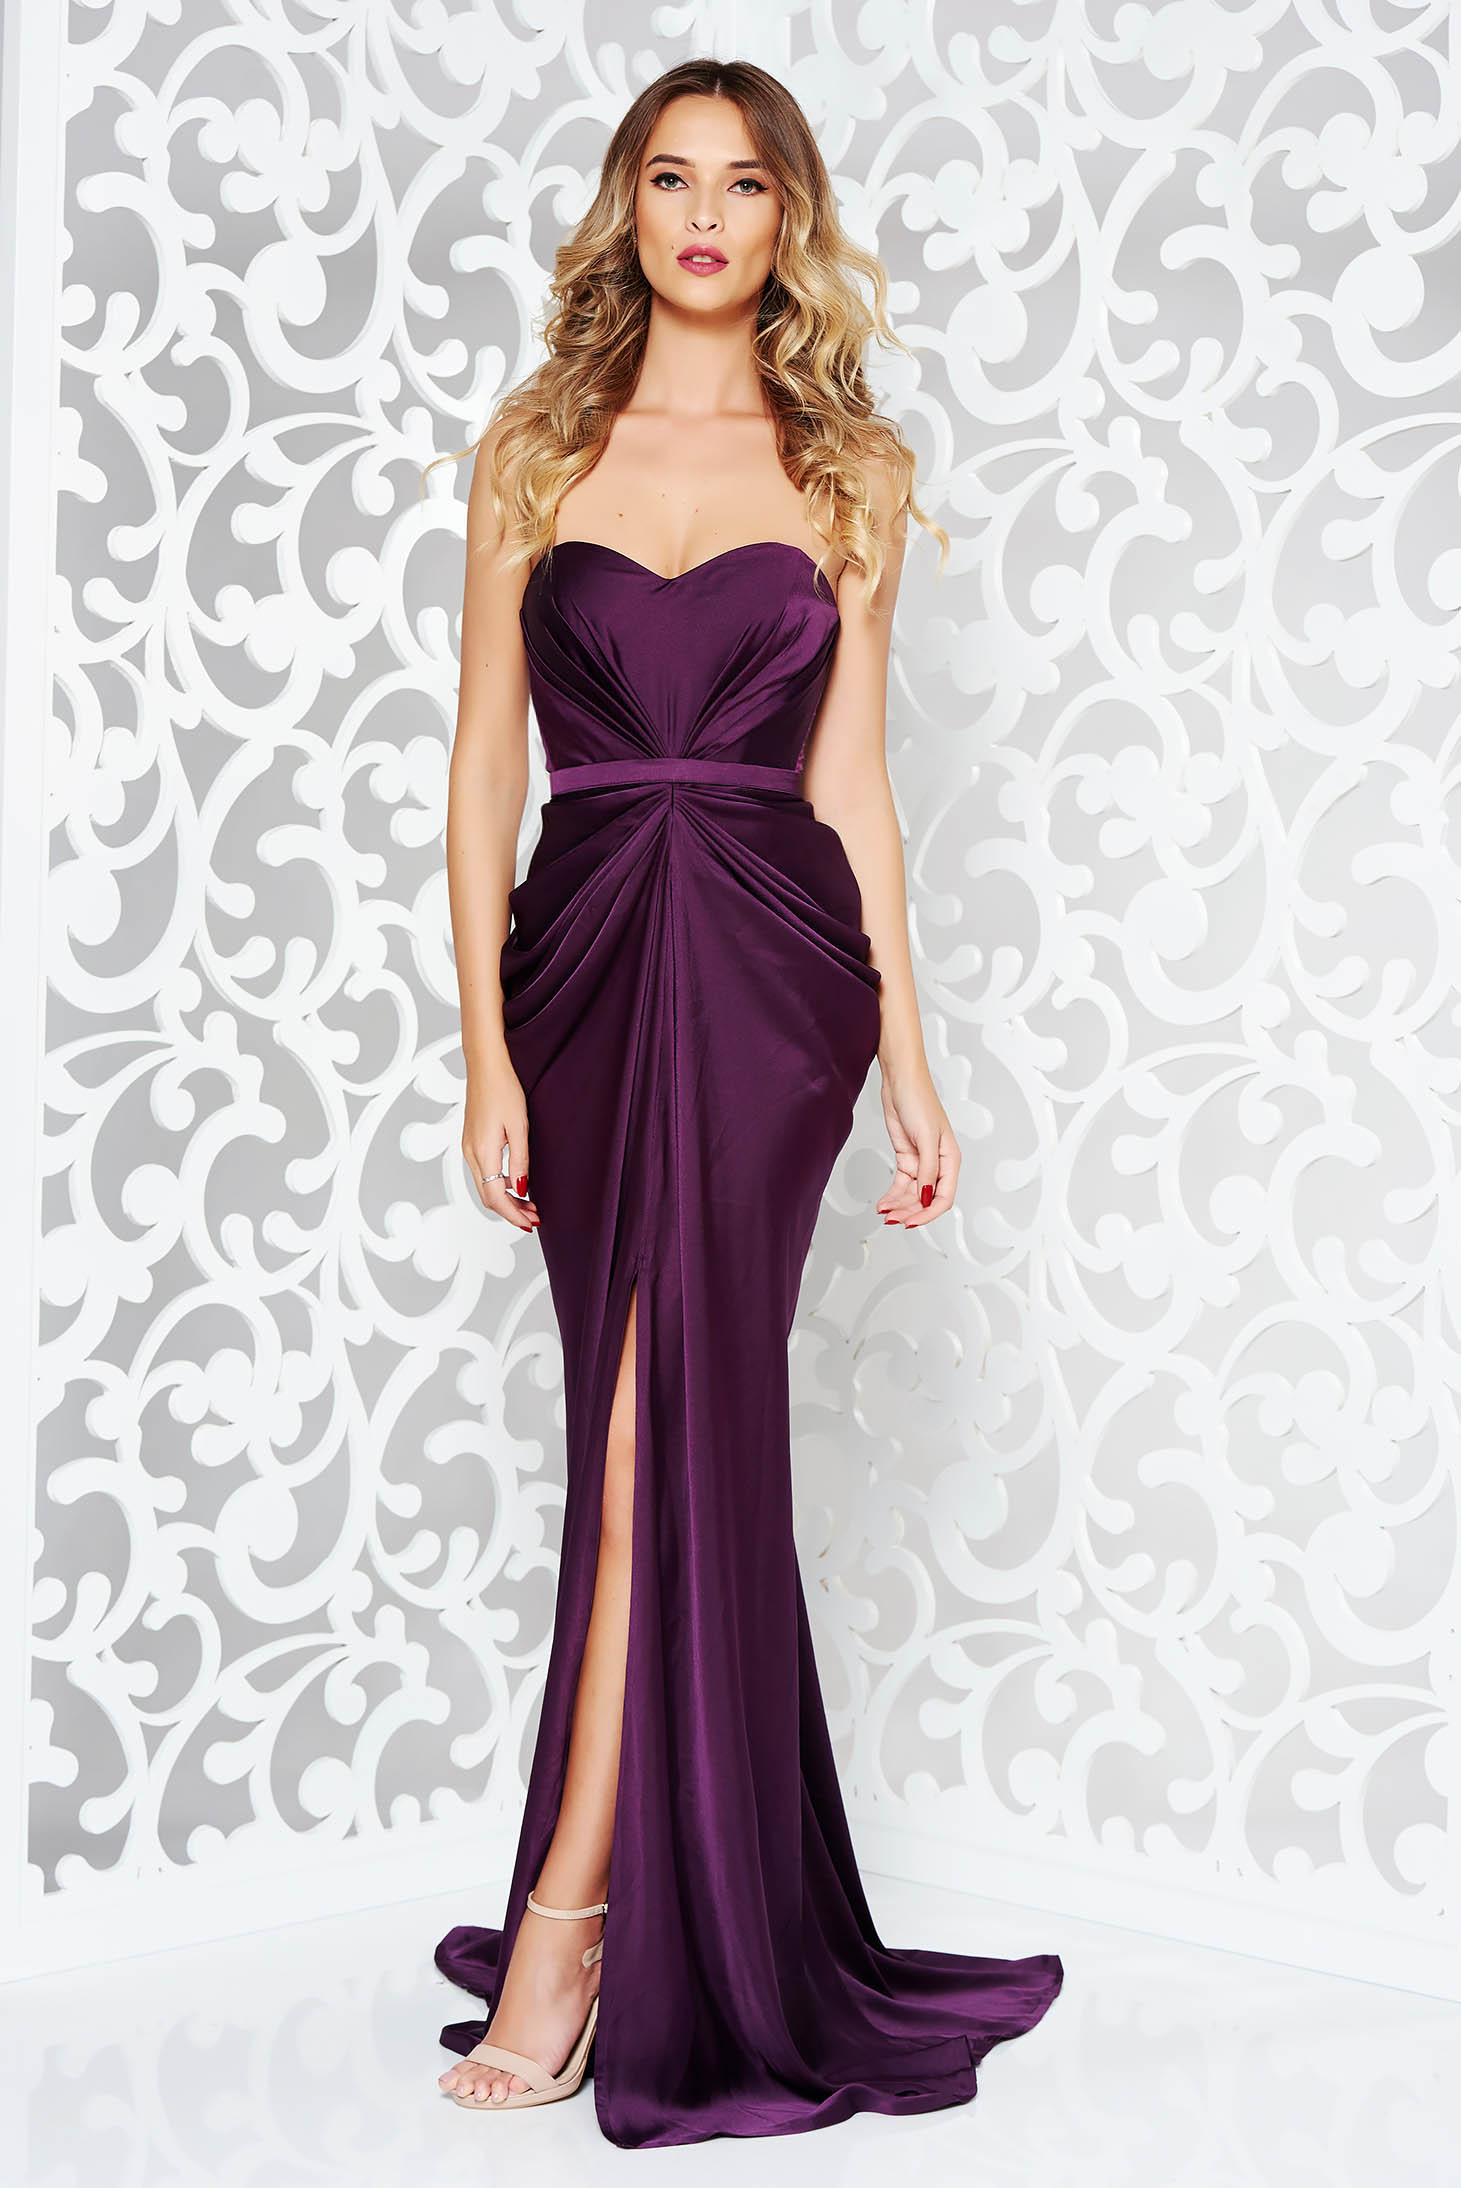 Ana Radu luxurious off shoulder dress from satin fabric texture with push-up bra accessorized with tied waistband purple